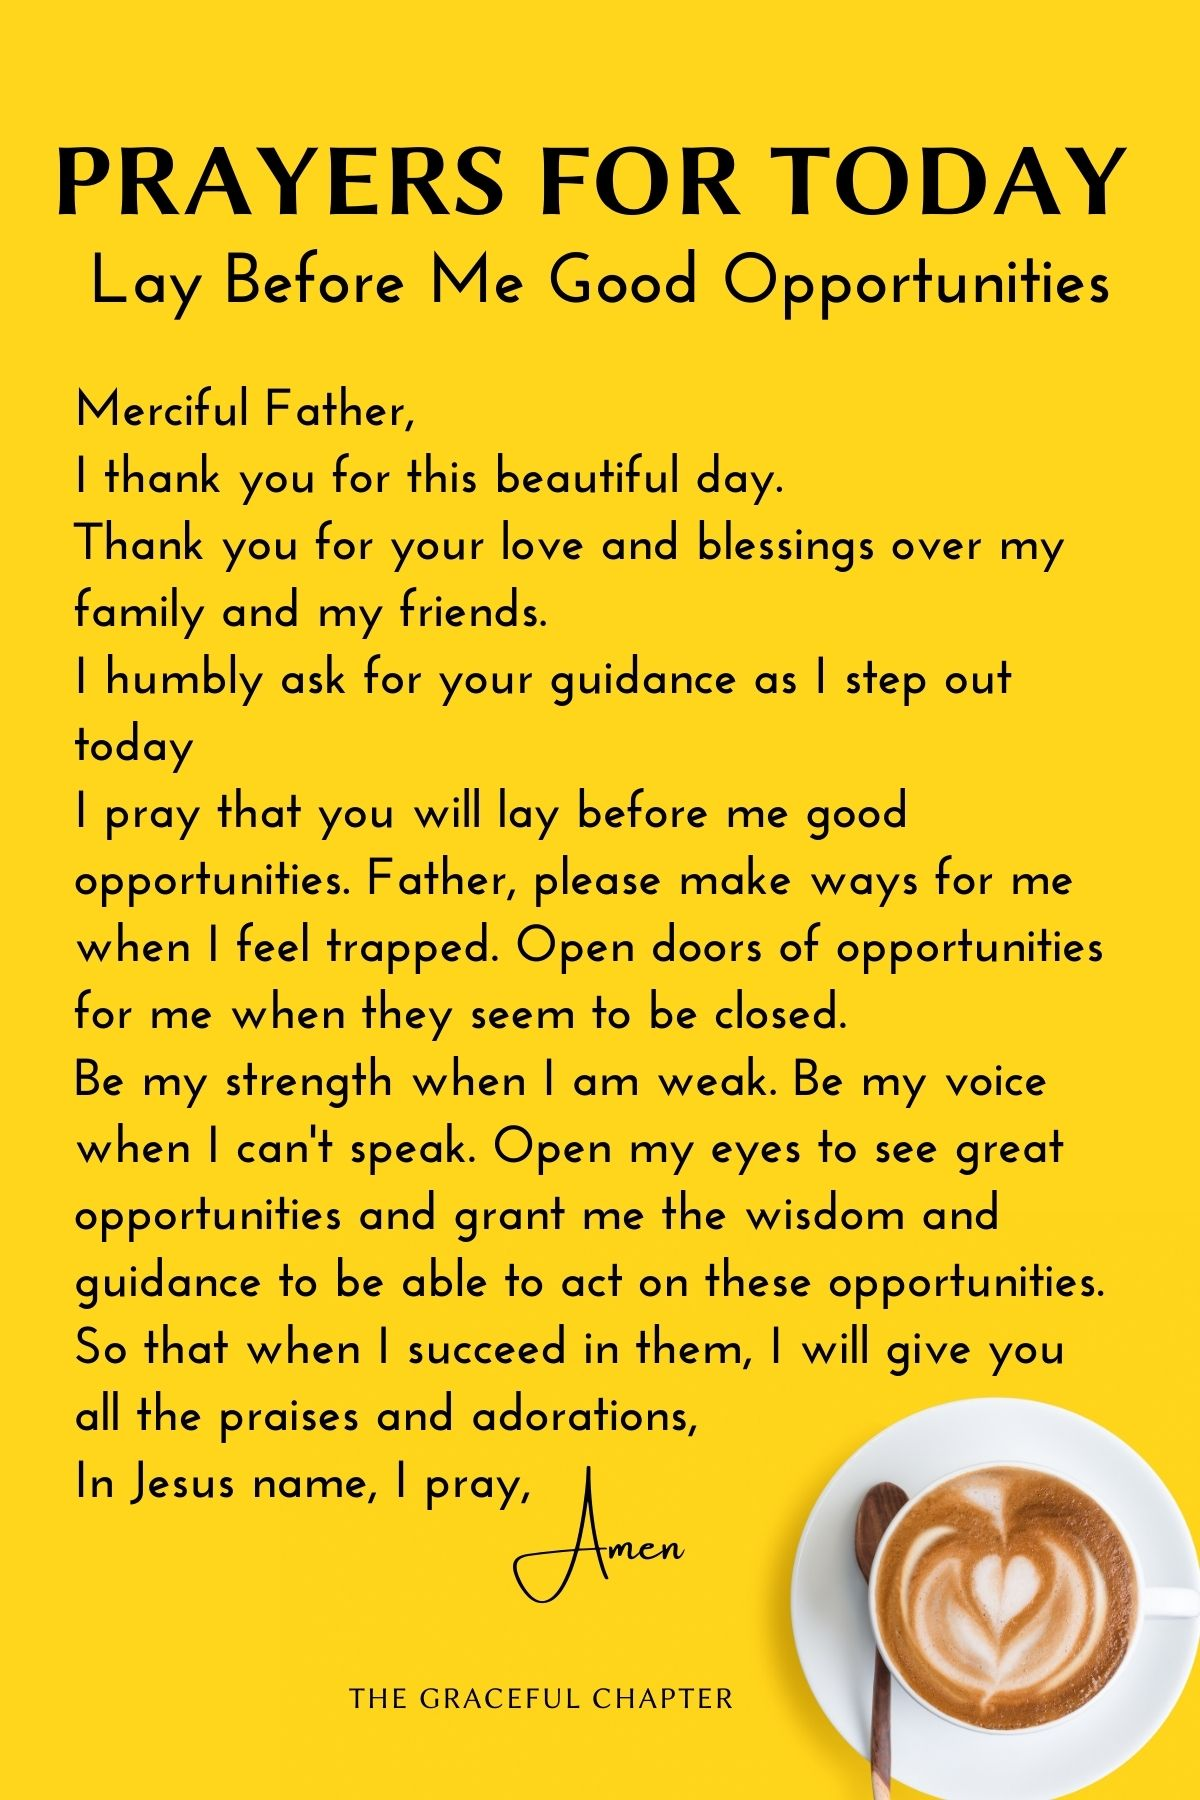 Prayers for today - Lay before me good opportunities